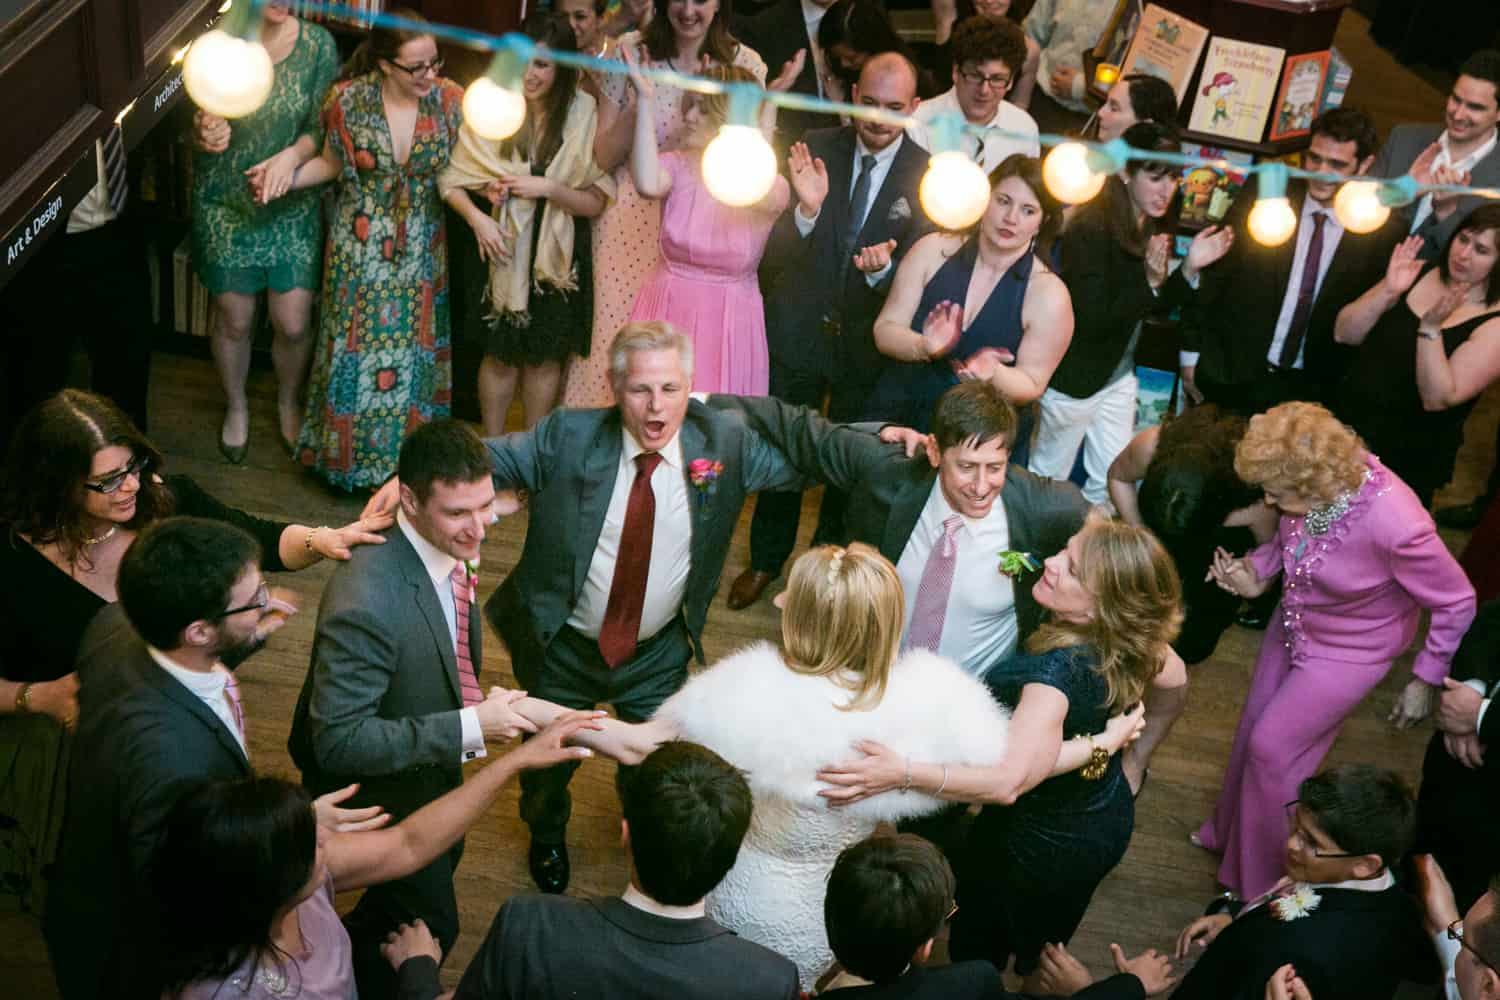 Bridal party dancing in circle hora dance at a Housing Works wedding